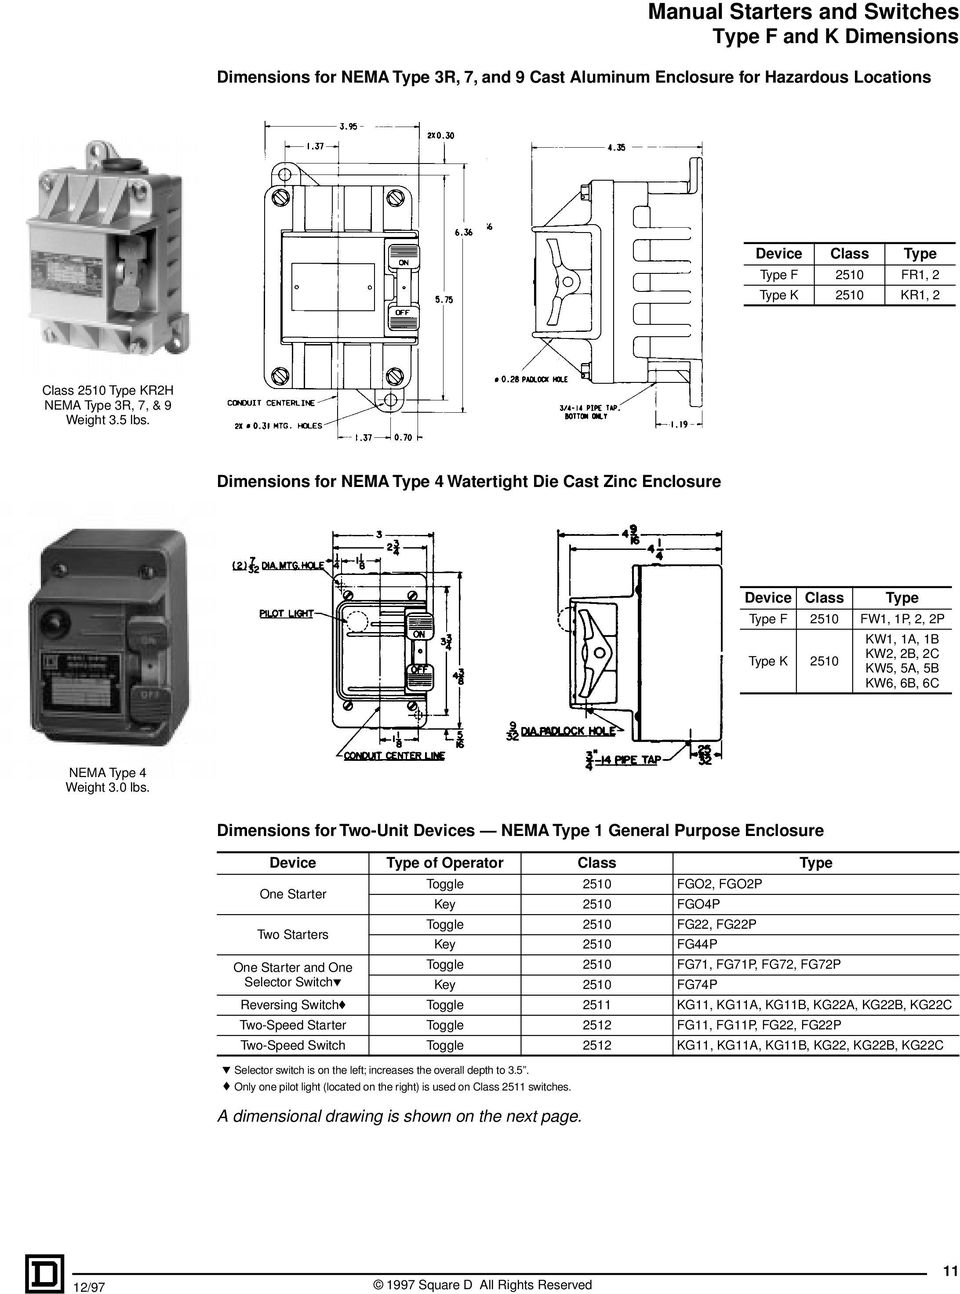 Manual Starters And Switches Selection Guide Pdf Ronk Transfer Switch Wiring Diagram Dimensions For Two Unit Devices Nema Type 1 General Purpose Device Class One